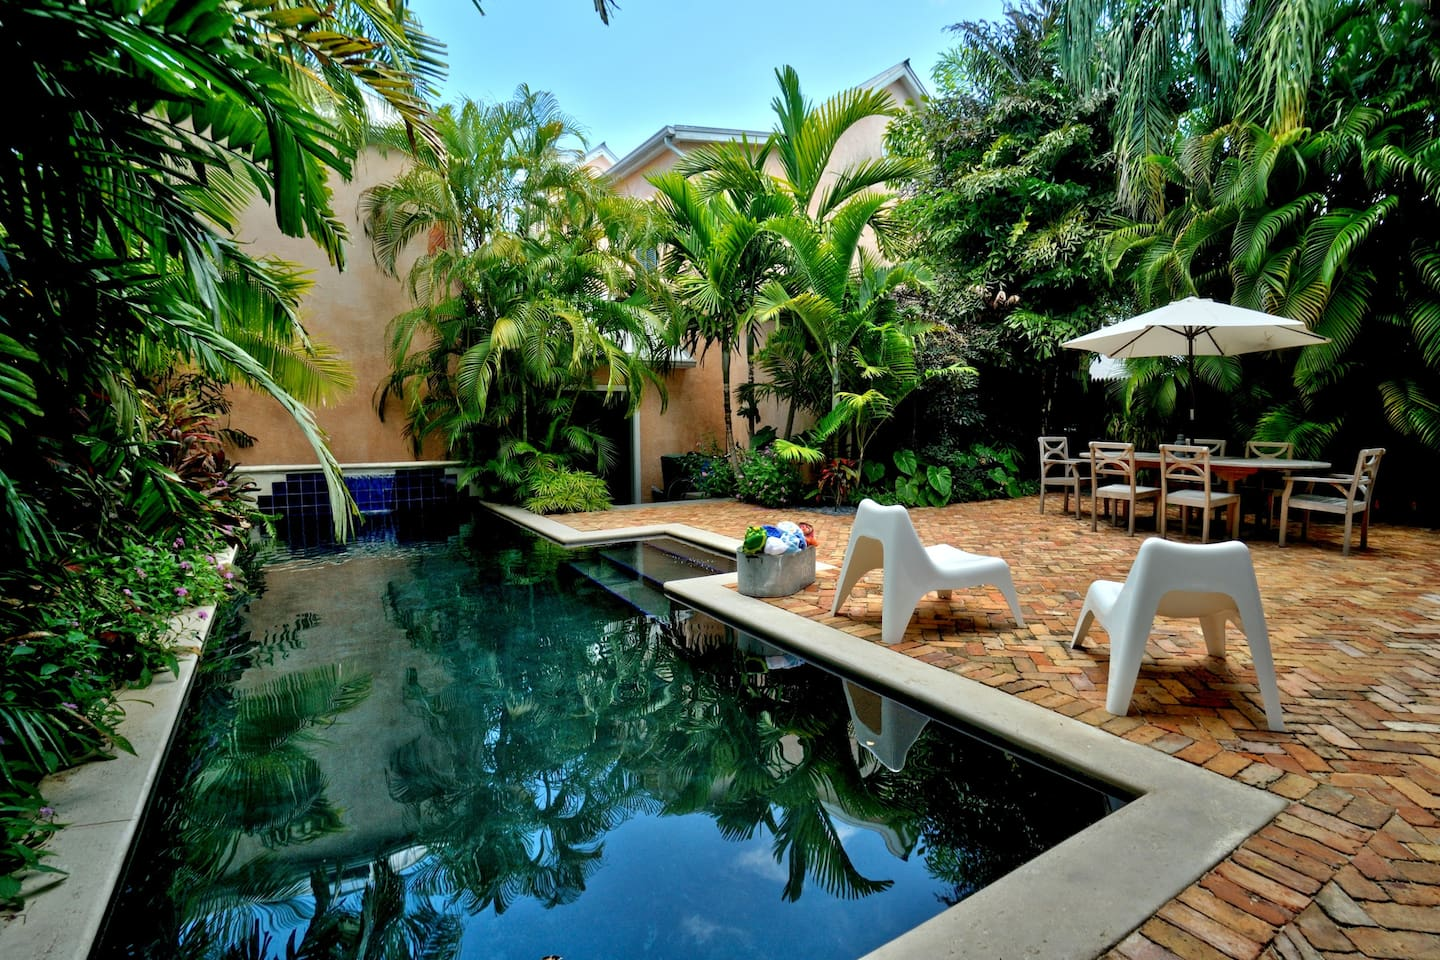 Secluded, private heated pool and outdoor eating area. Just steps from, world famous Duval St...